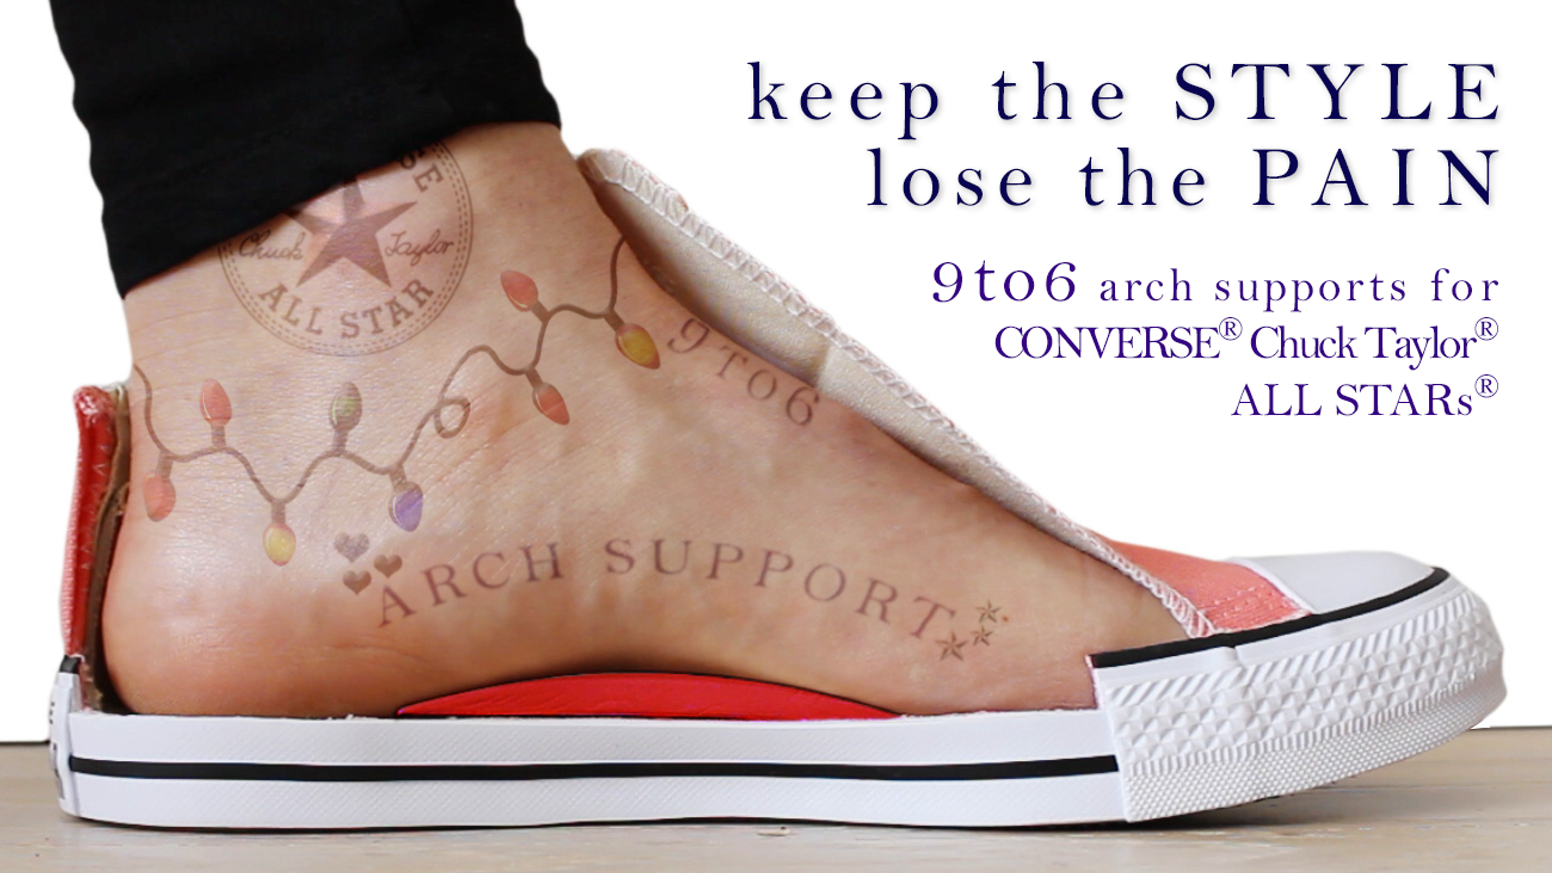 Anual Coherente Turista  9to6: Finally. Arch Support for Chuck Taylors. No More Pain! by Kate Ki —  Kickstarter